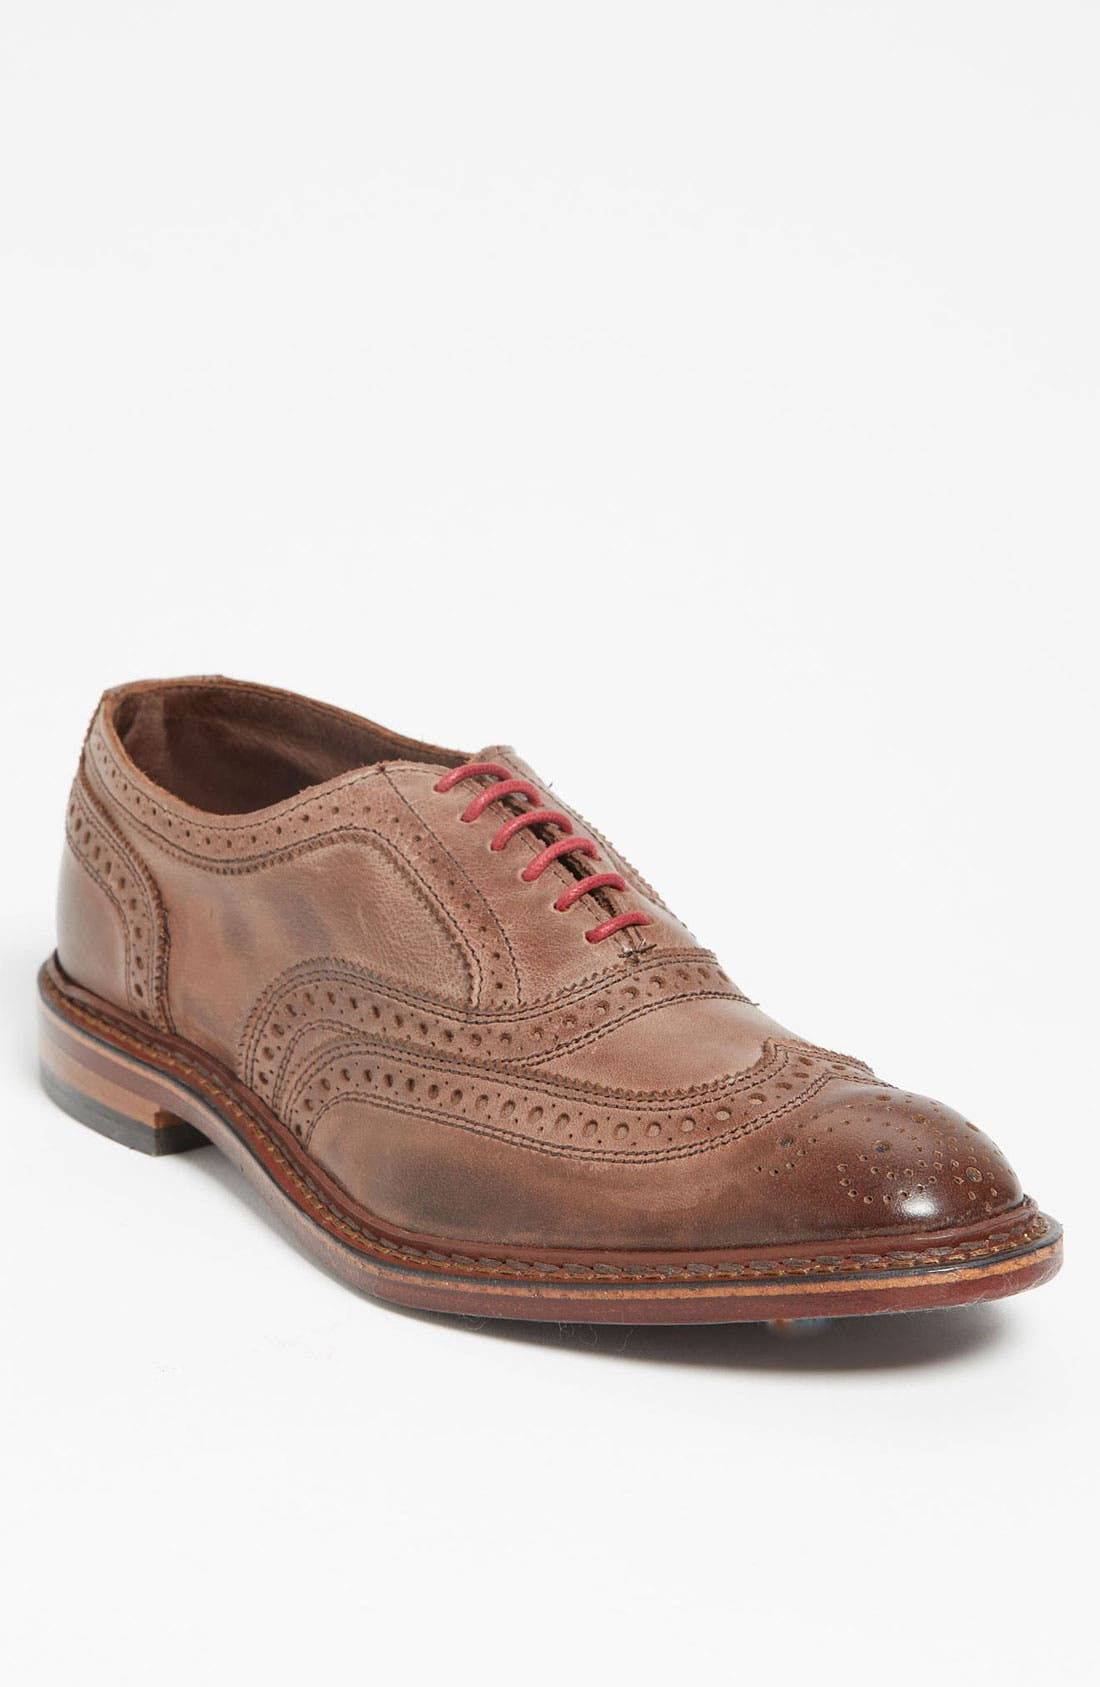 Alternate Image 1 Selected - Allen Edmonds 'Neumok' Wingtip (Men)